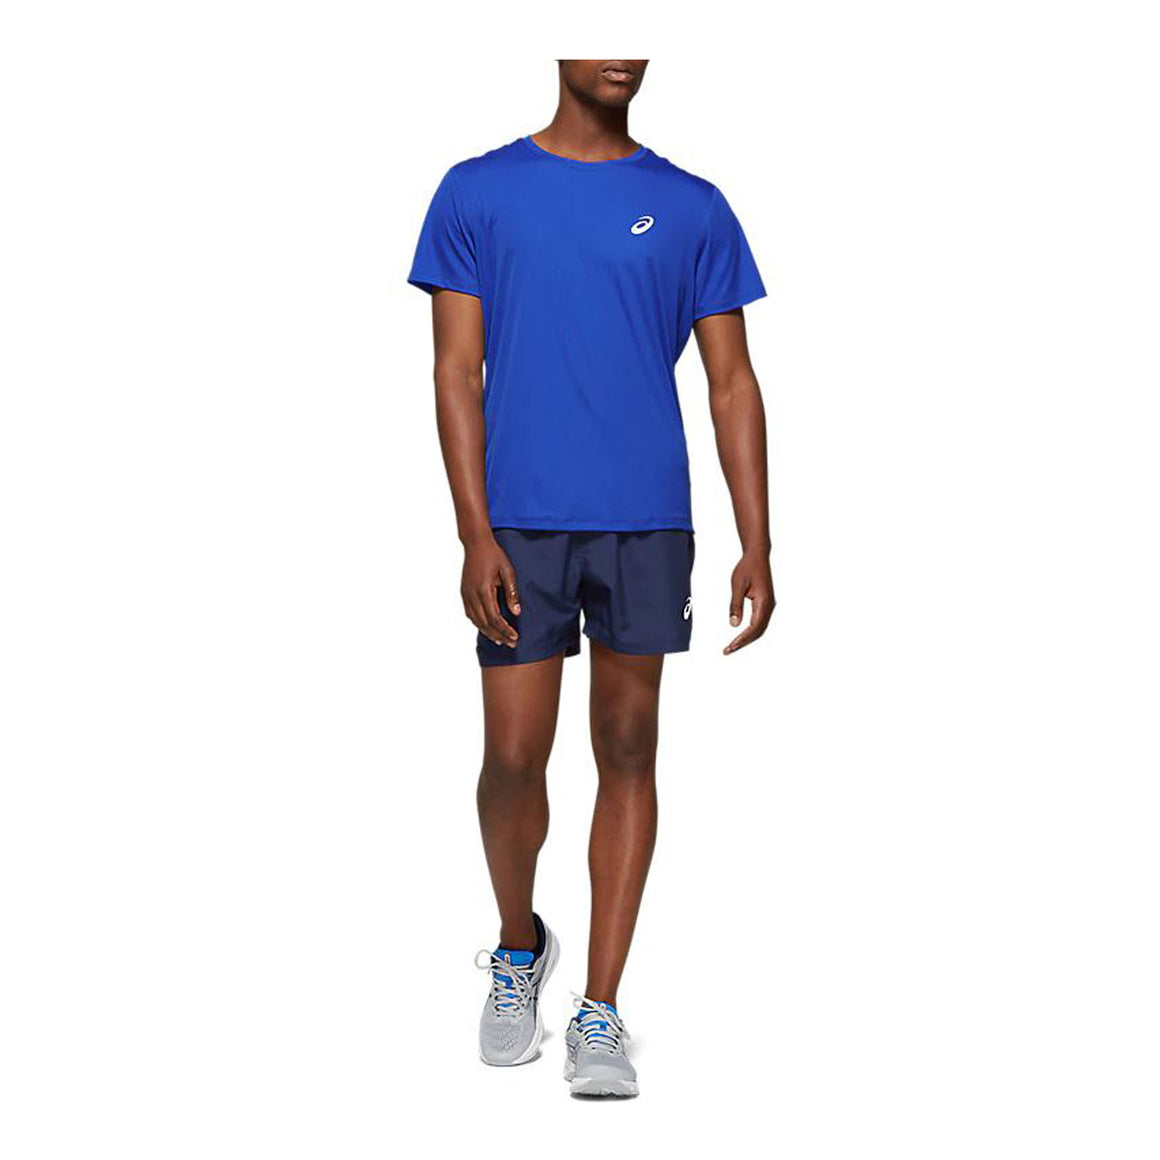 Silver Short Sleeved Running Top for Men in Asics Blue